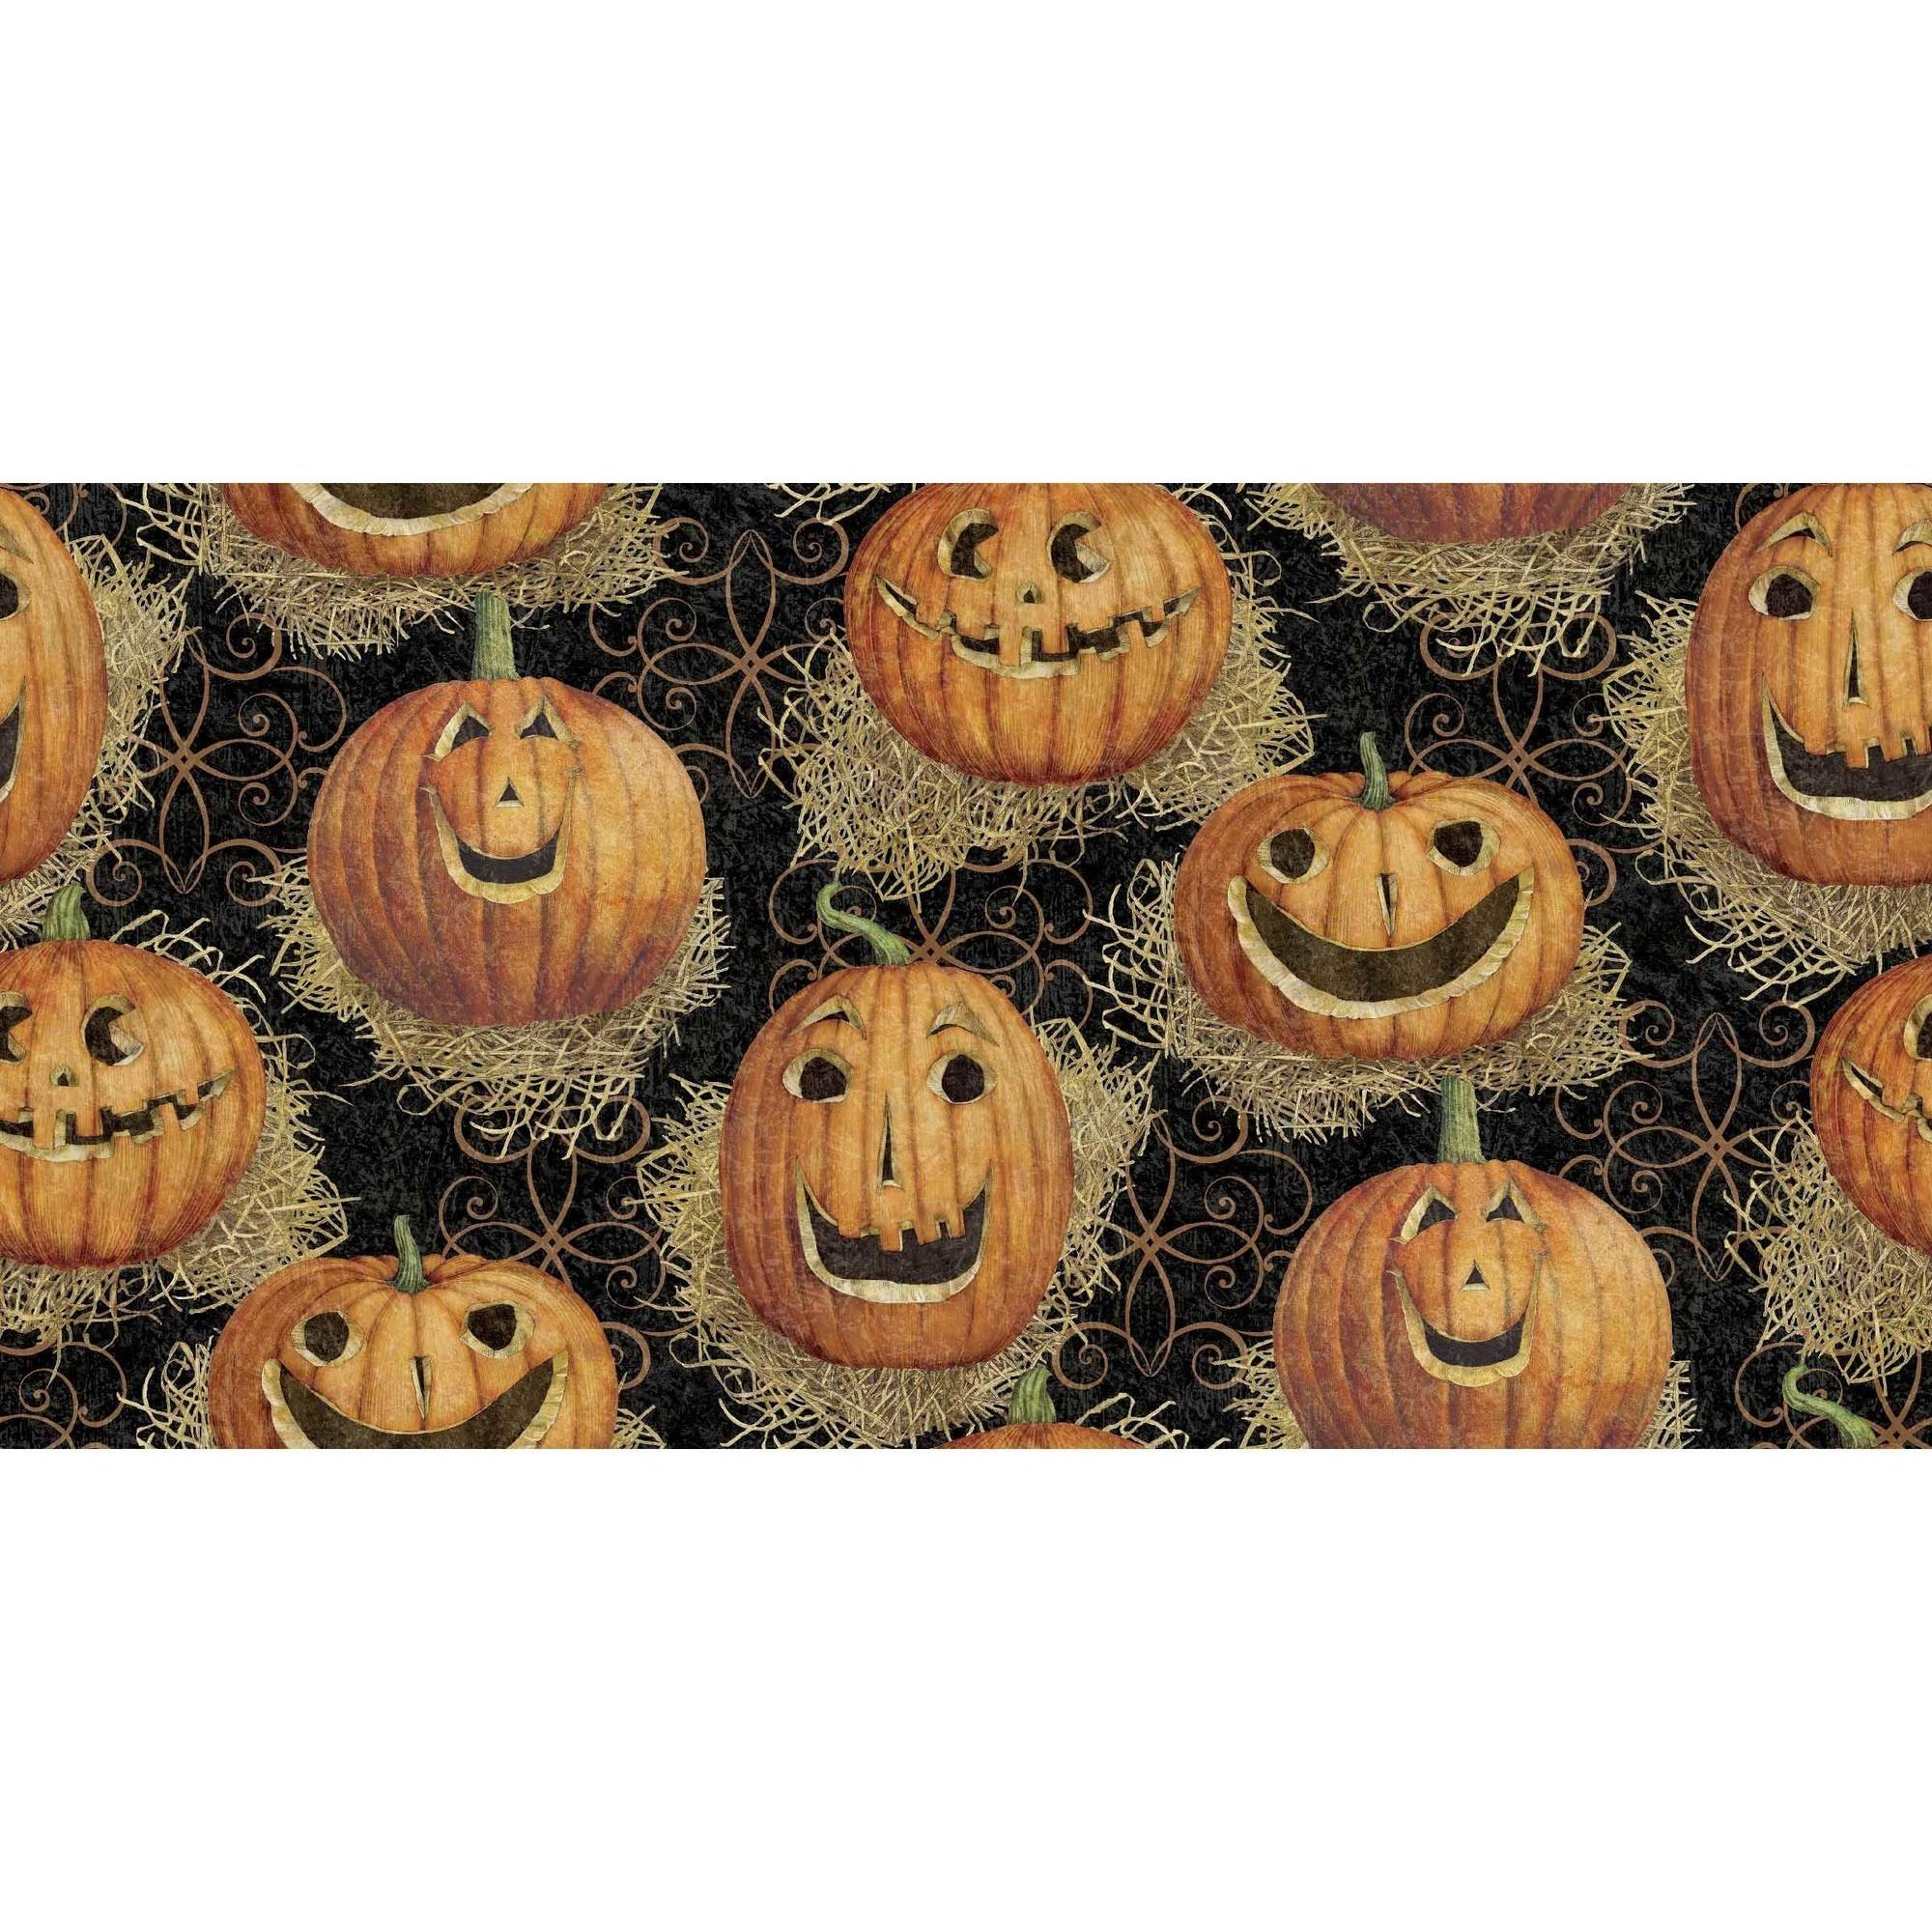 "Halloween Pumpkin Faces, Multi-Colored, 100 Percent Cotton, 43/44"" Width, Fabric by the Yard"